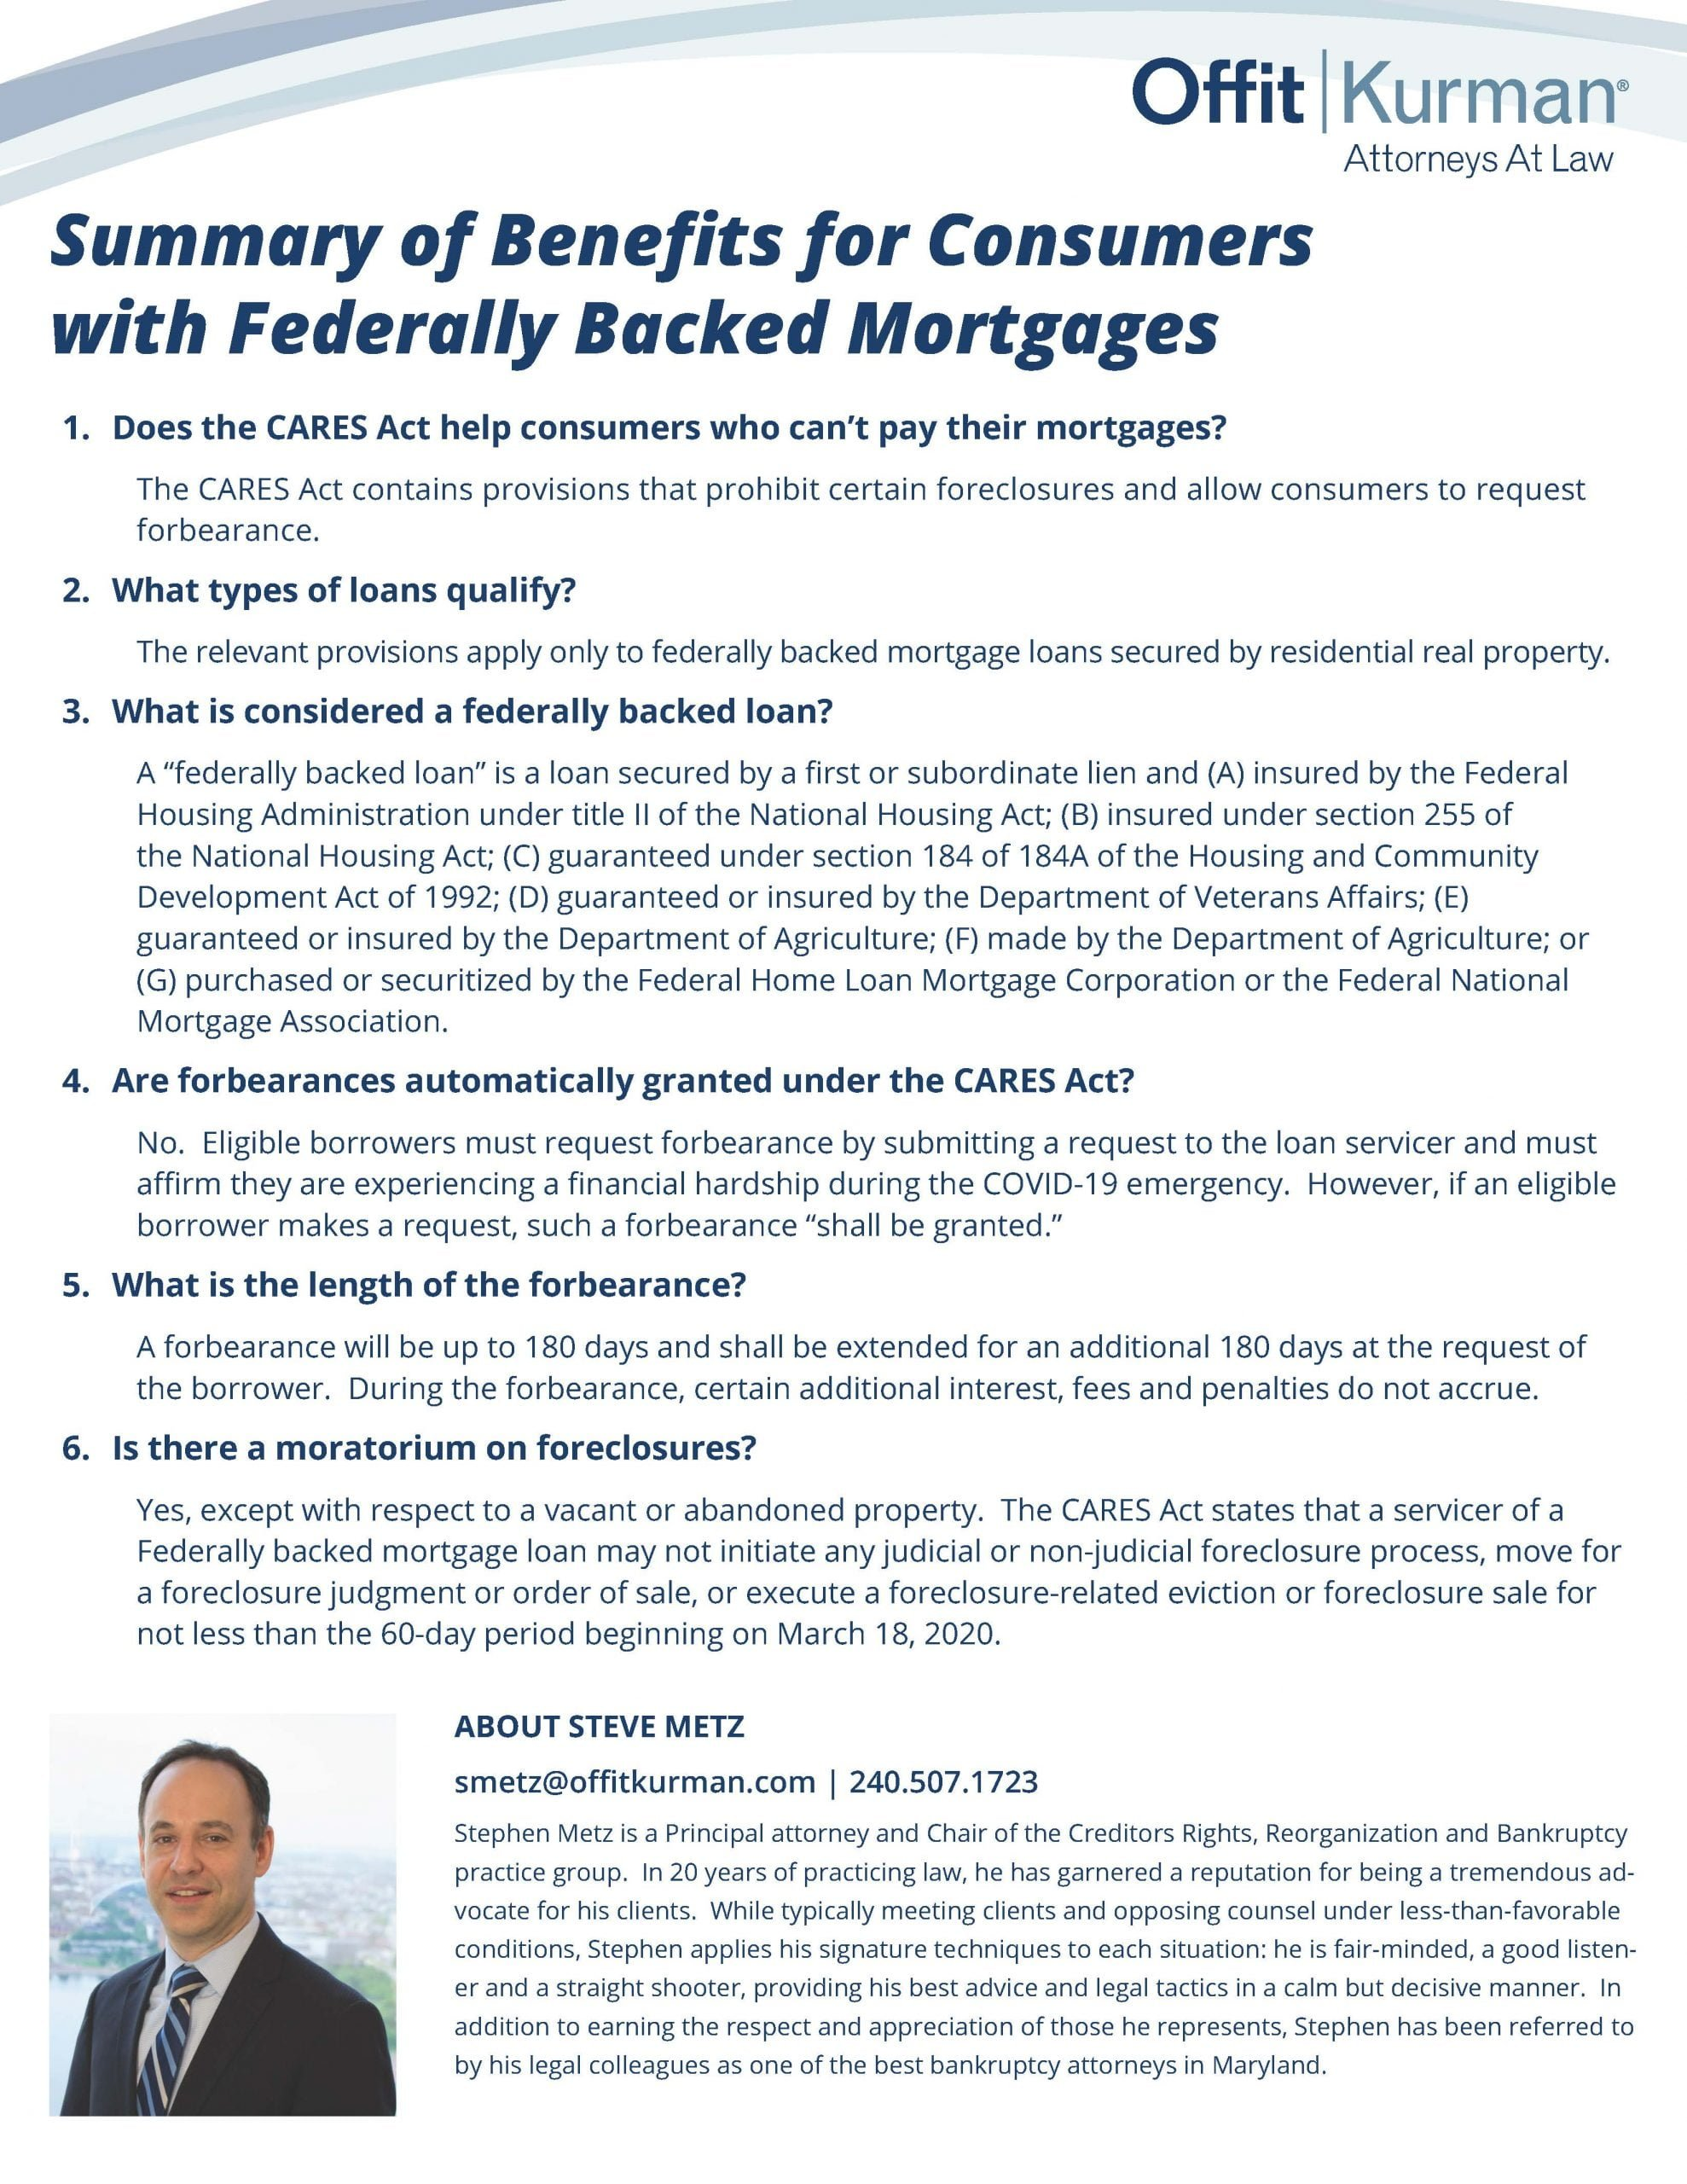 Summary of Benefits for Consumers with Federally Backed Mortgages-041420